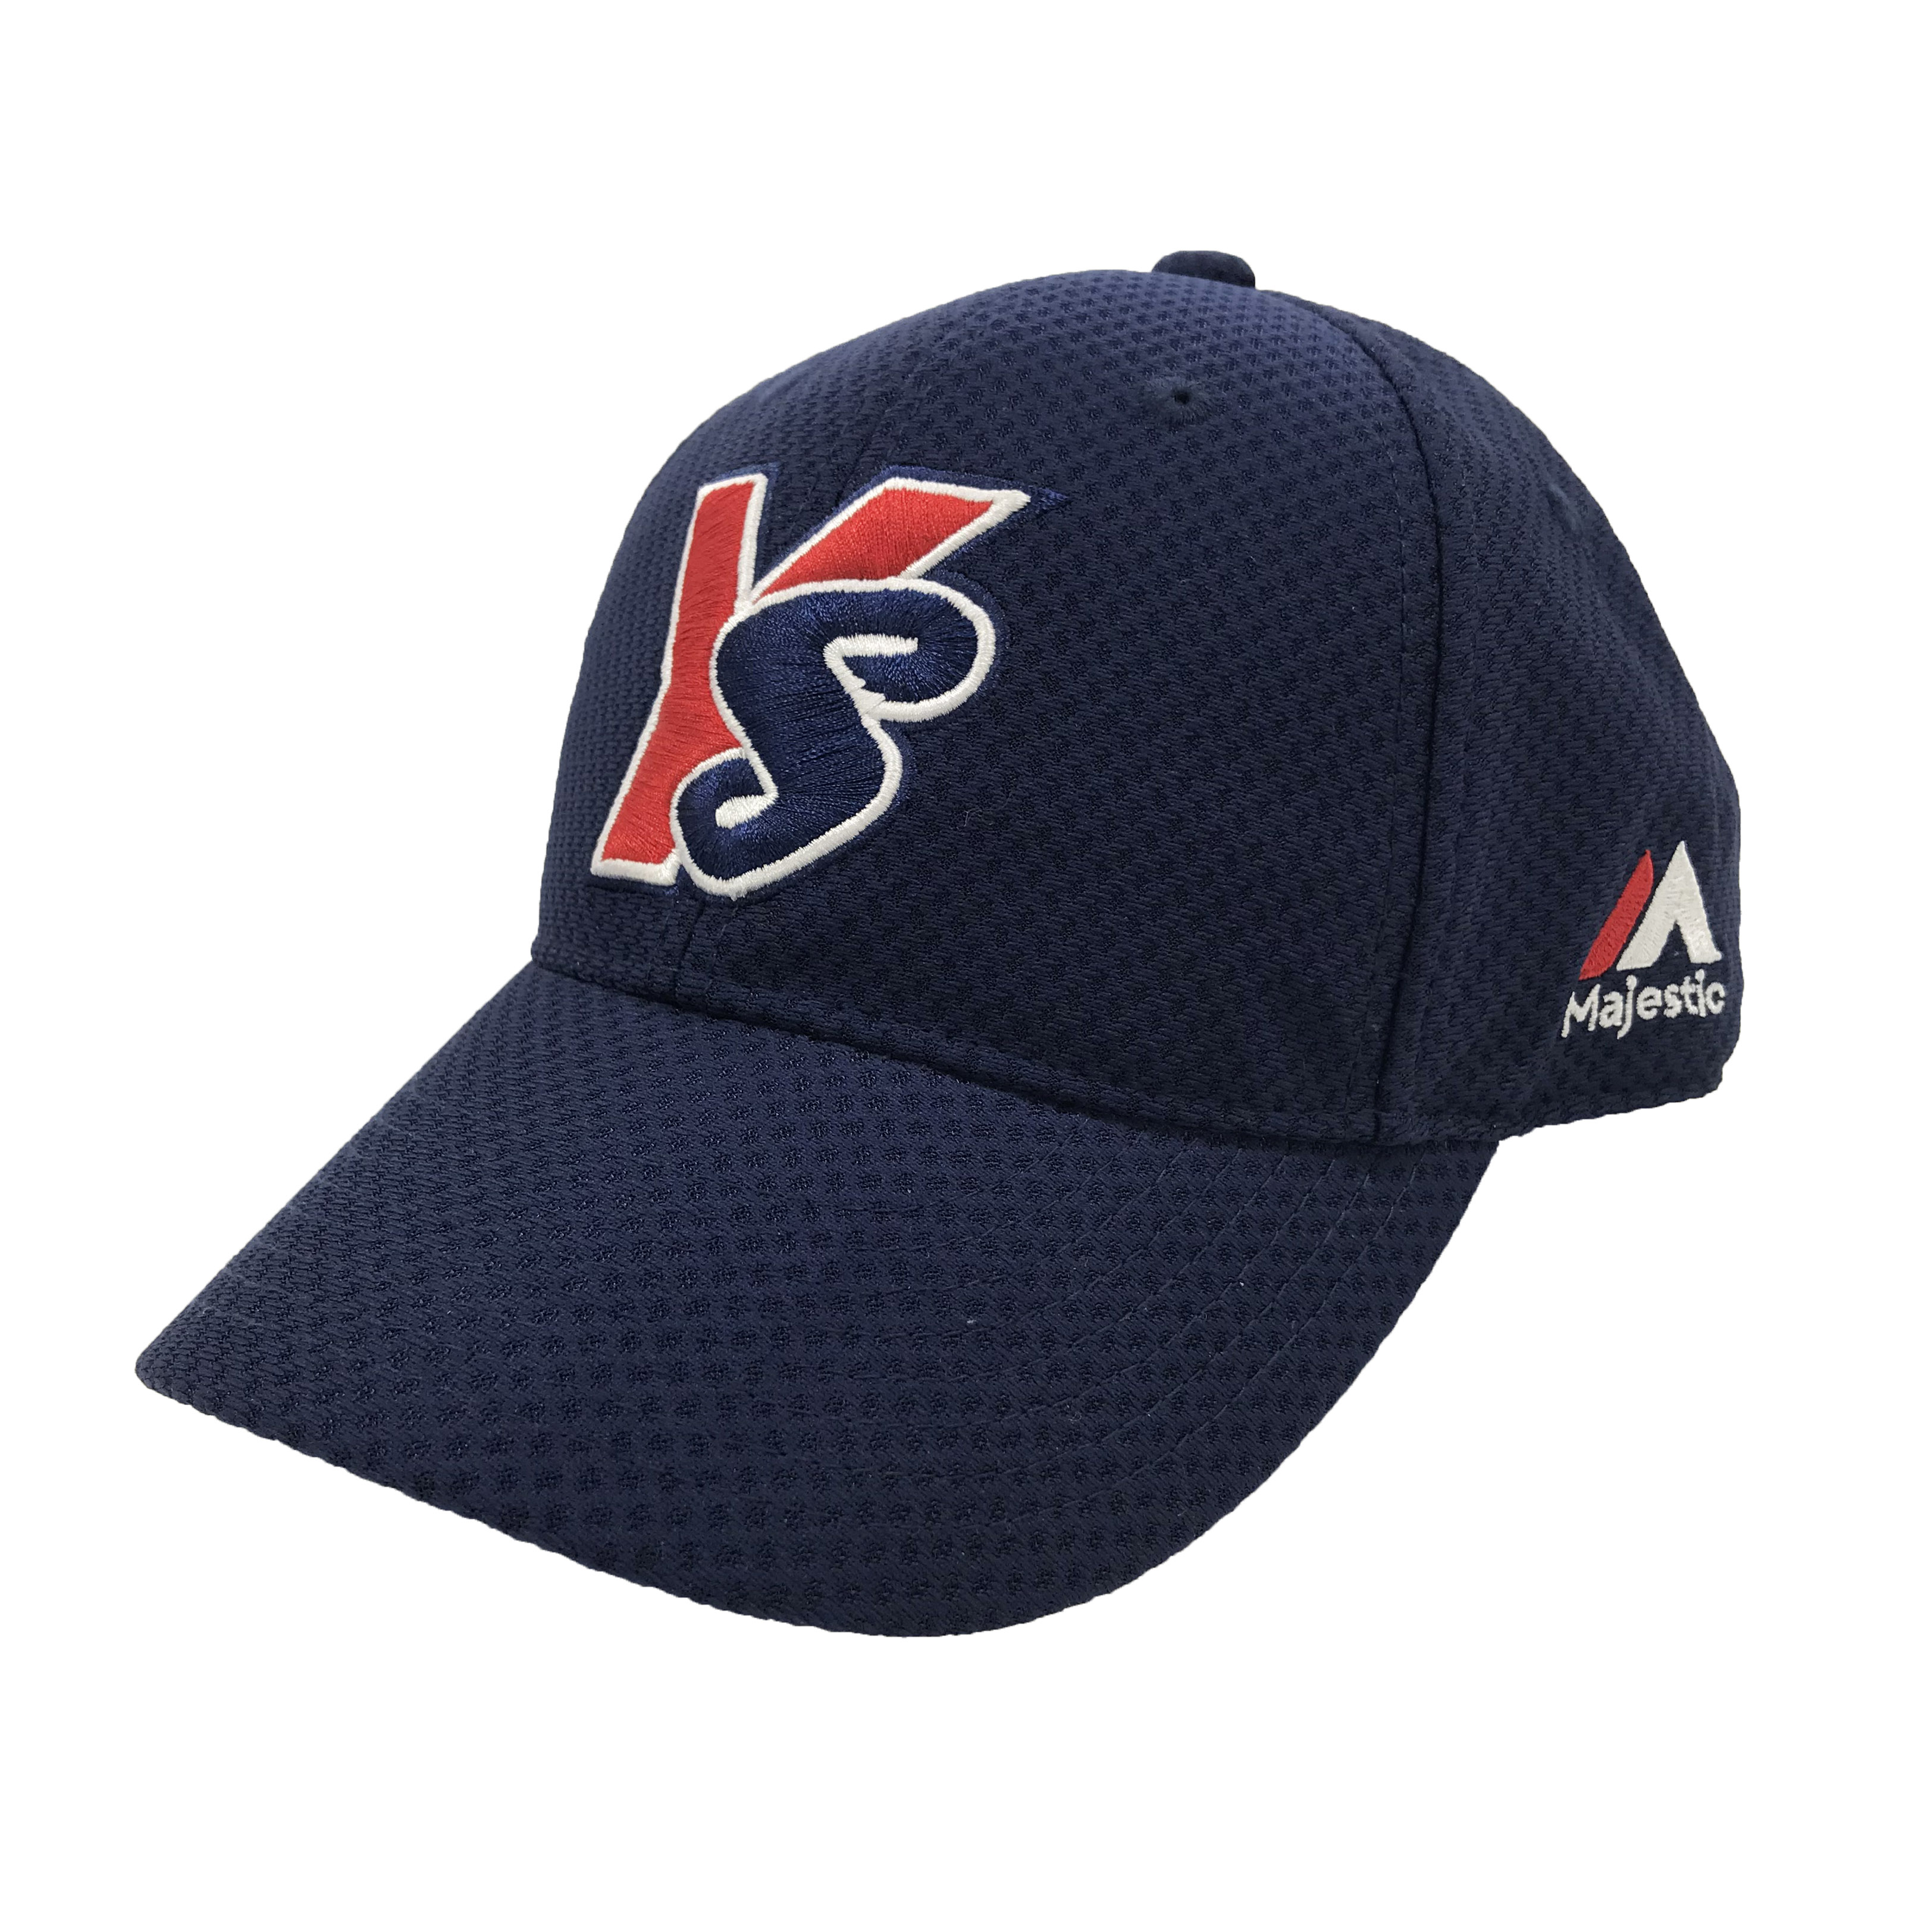 SWALLOWS DREAM GAME レプリカCAP(ホーム)